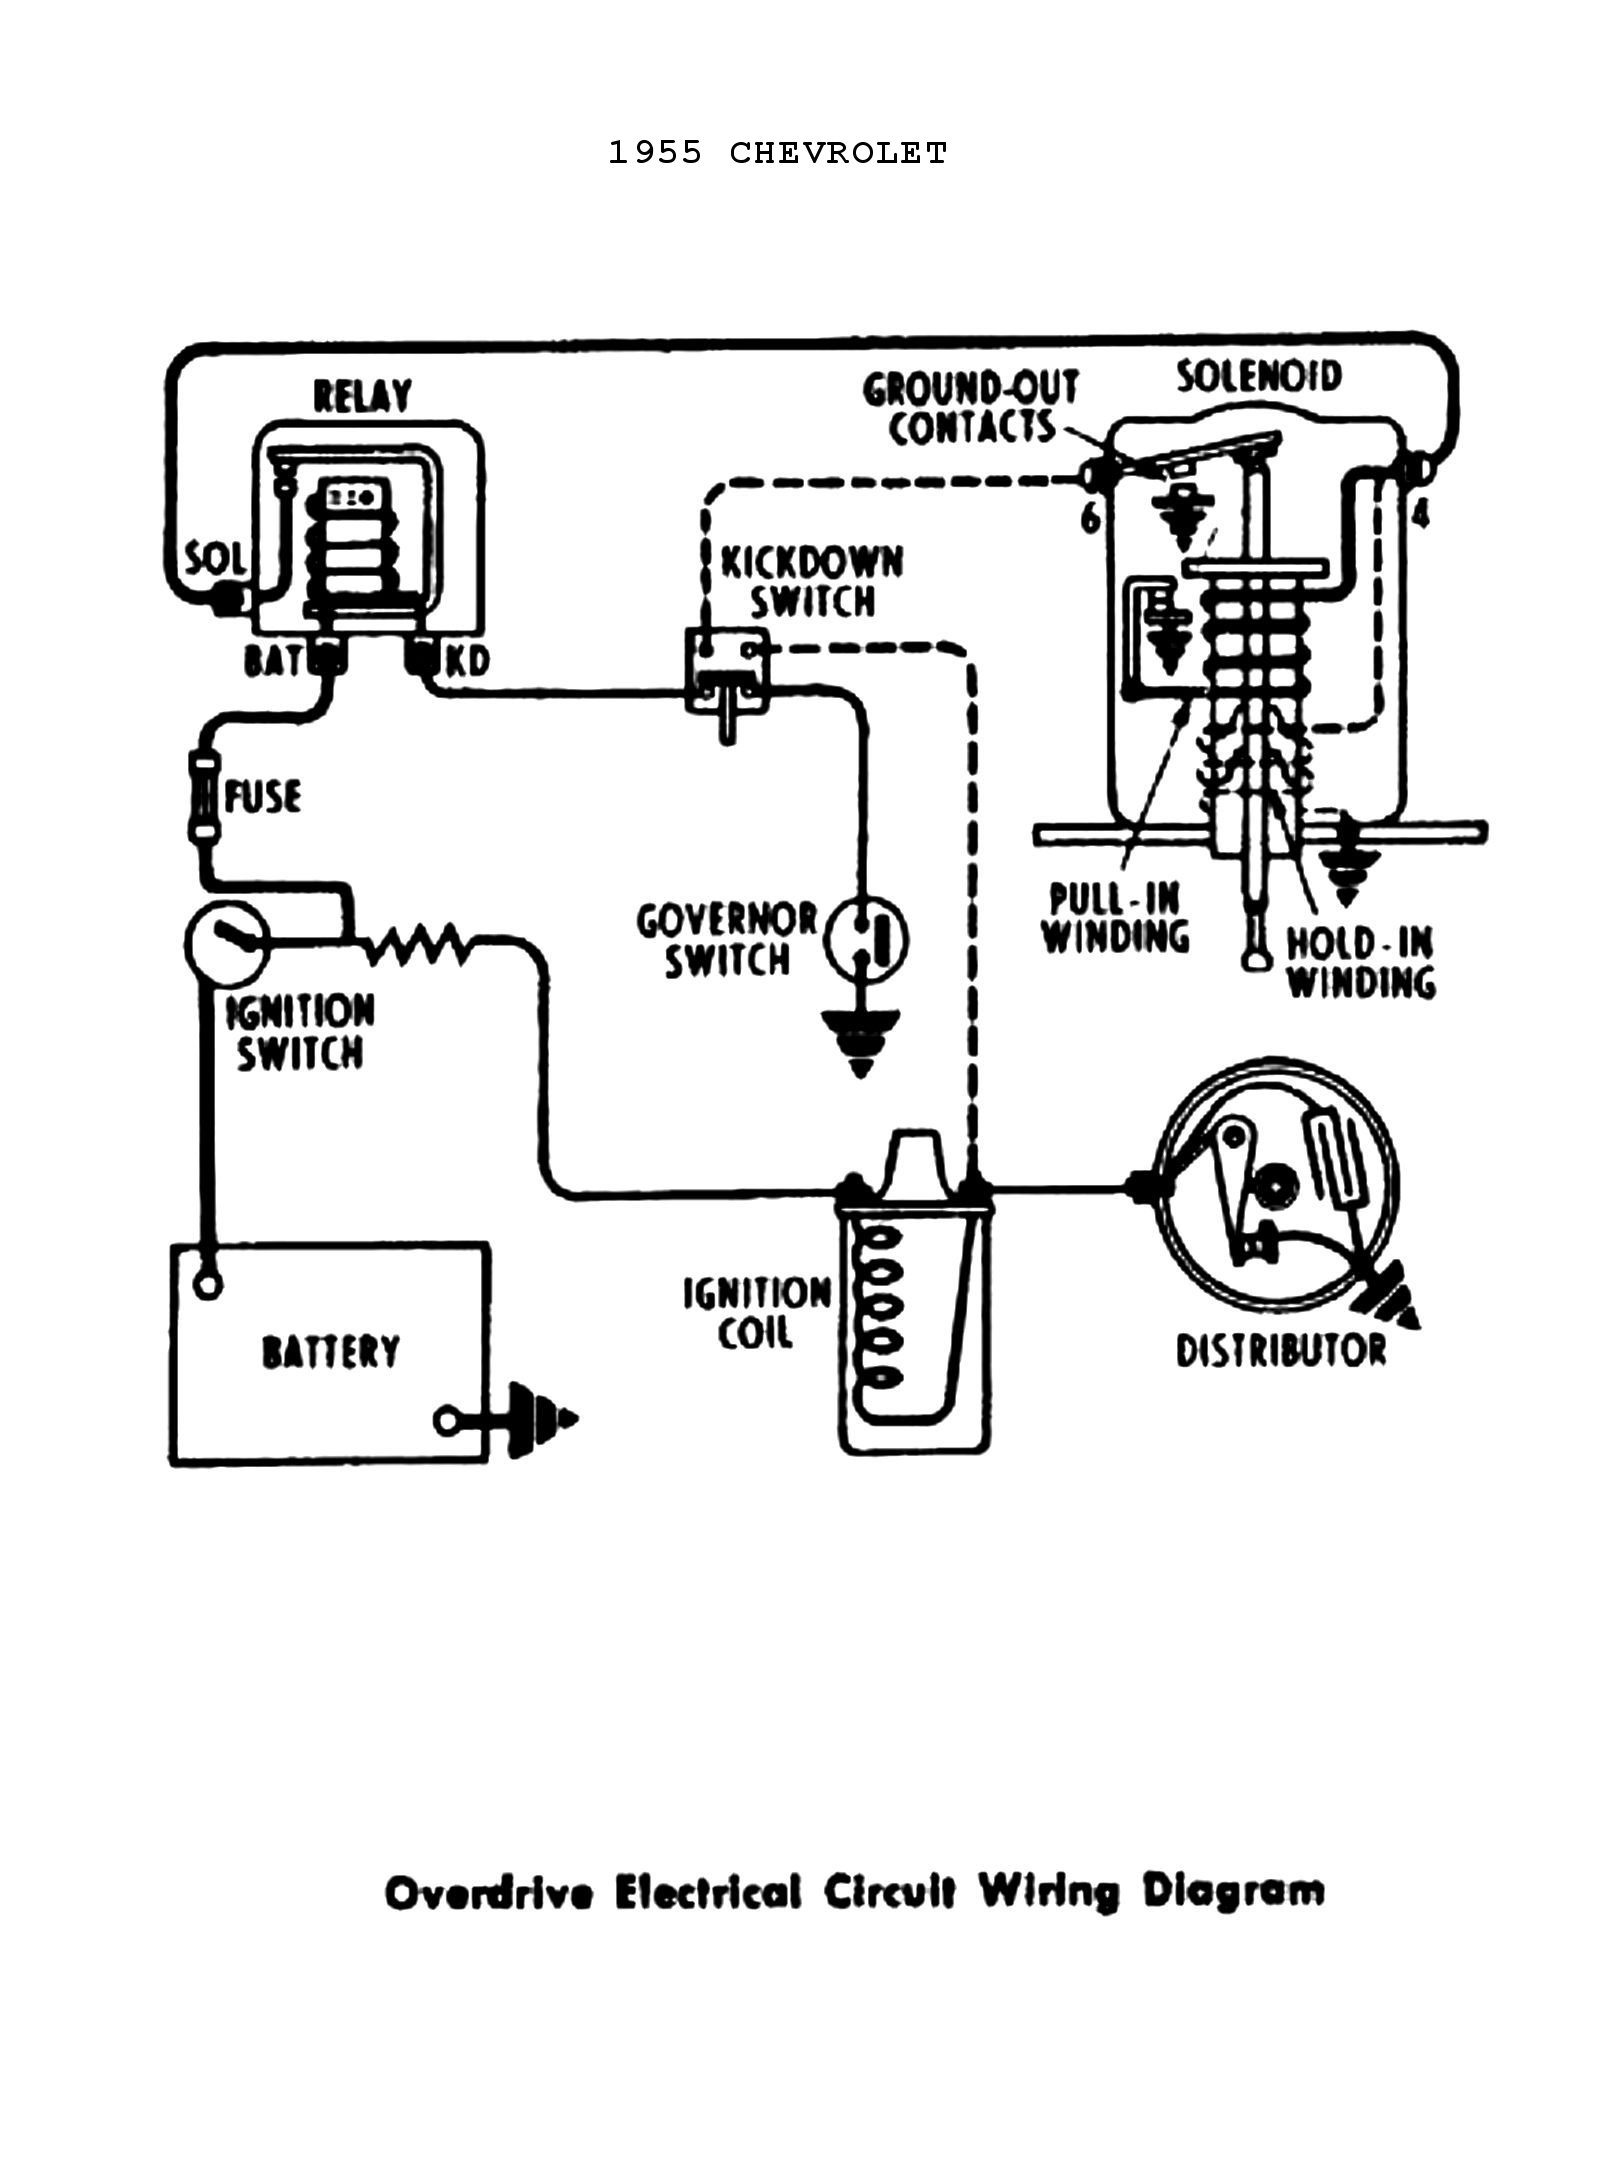 Ignition Key Bypass 807353 further Instructions For Go Efi Systems as well Showthread in addition Fords Bilhistoria additionally Mopar Electronic Ignition Conversion Wiring Diagram. on dodge 318 distributor diagram